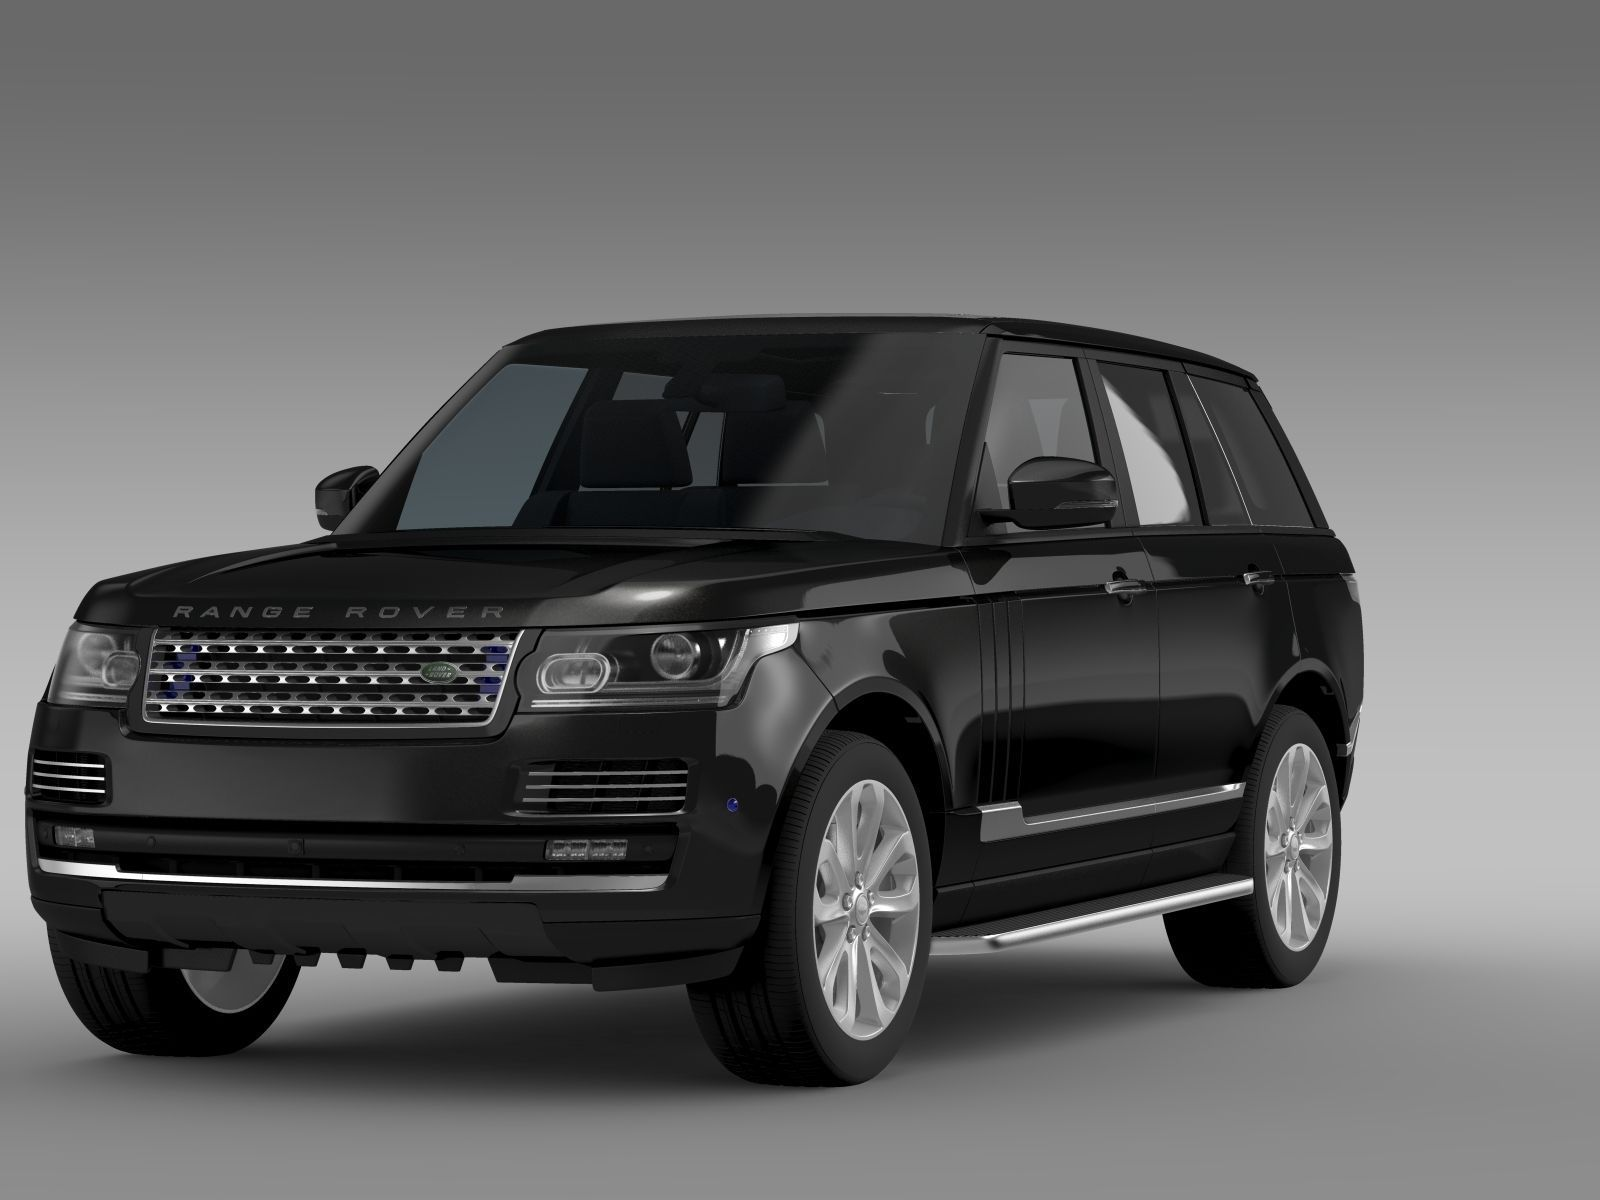 range rover sentinel l405 2016 3d model max obj 3ds fbx. Black Bedroom Furniture Sets. Home Design Ideas